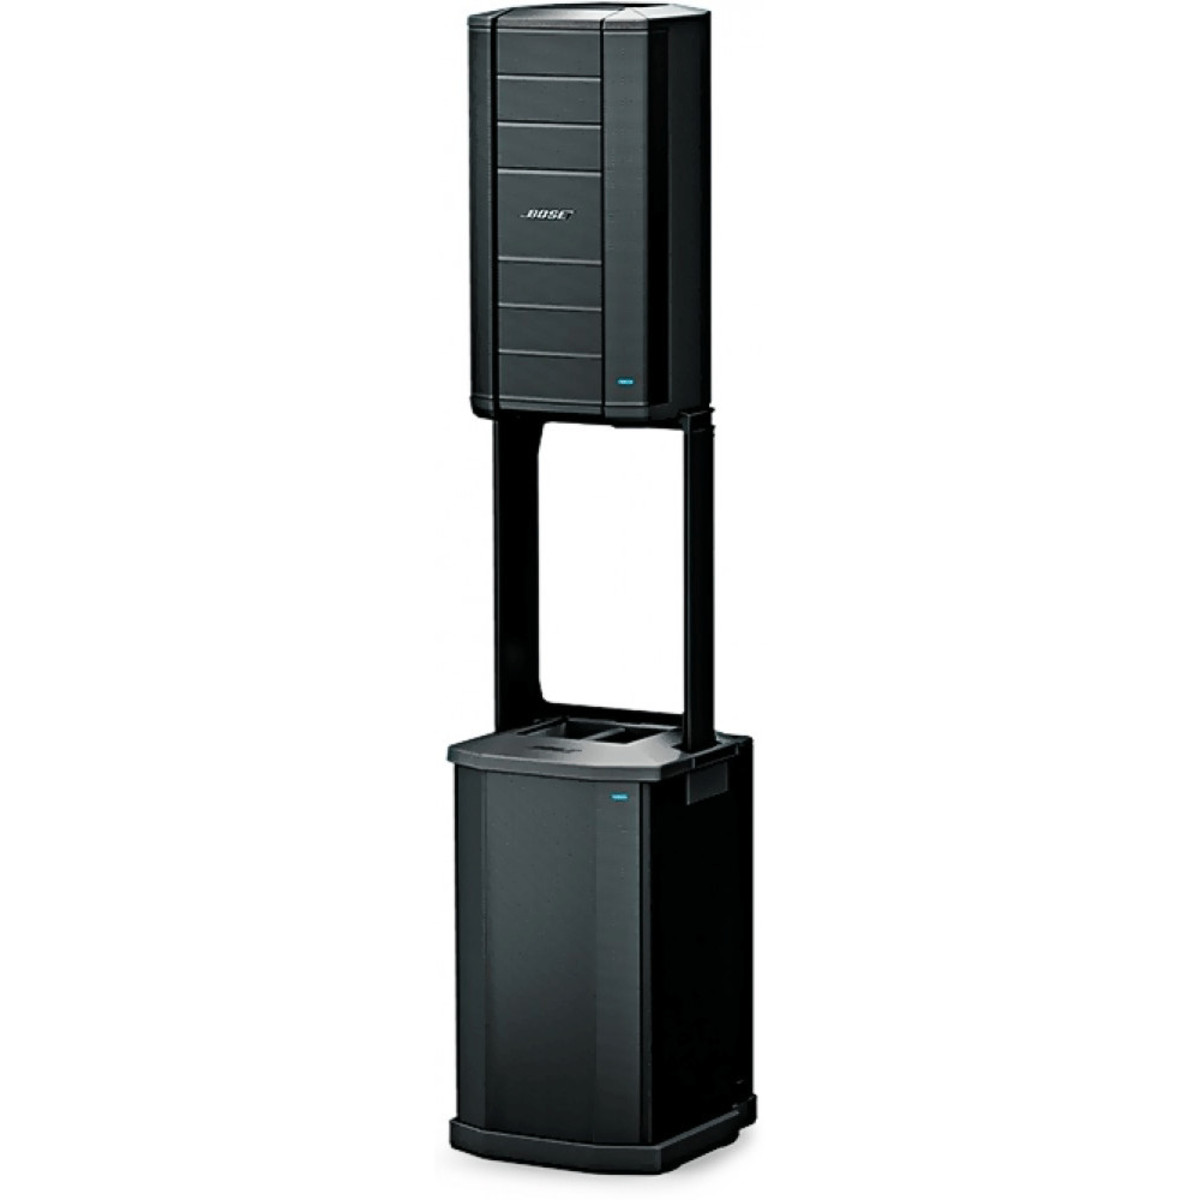 bose f1 flexible array lautsprecher system mit f1 subwoofer auf. Black Bedroom Furniture Sets. Home Design Ideas